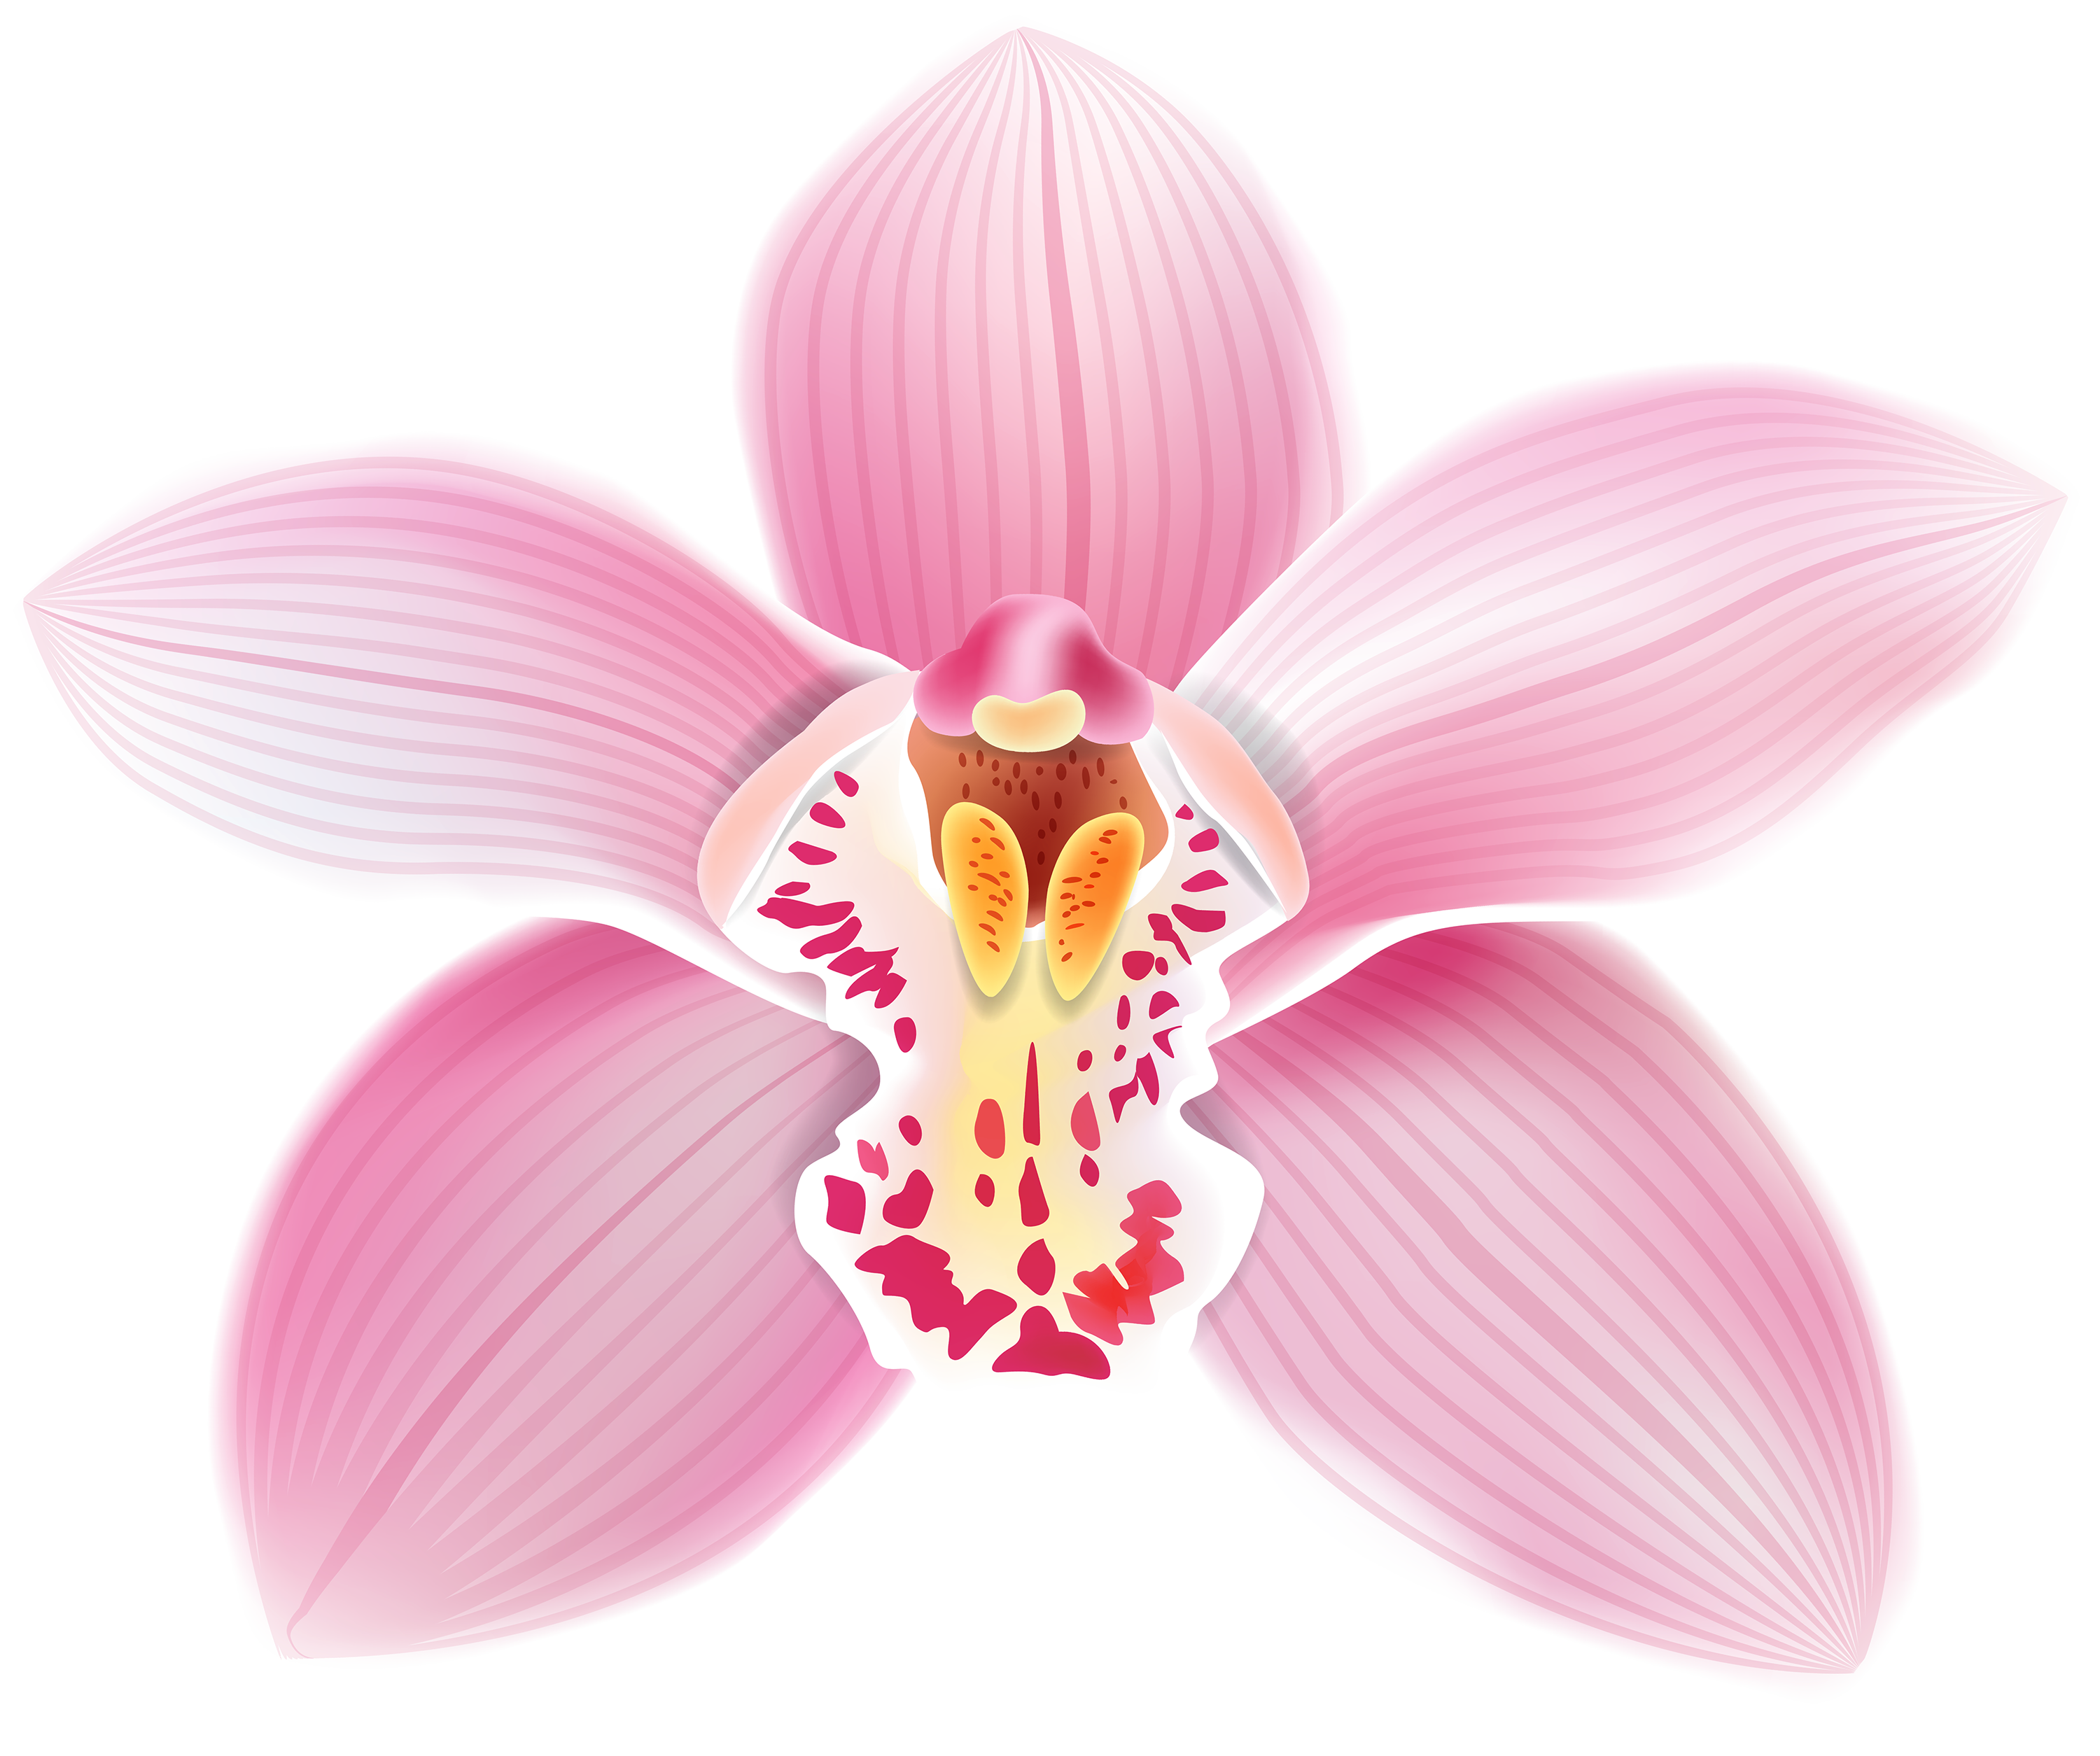 Orchid transparent high resolution. Pink png clipart best